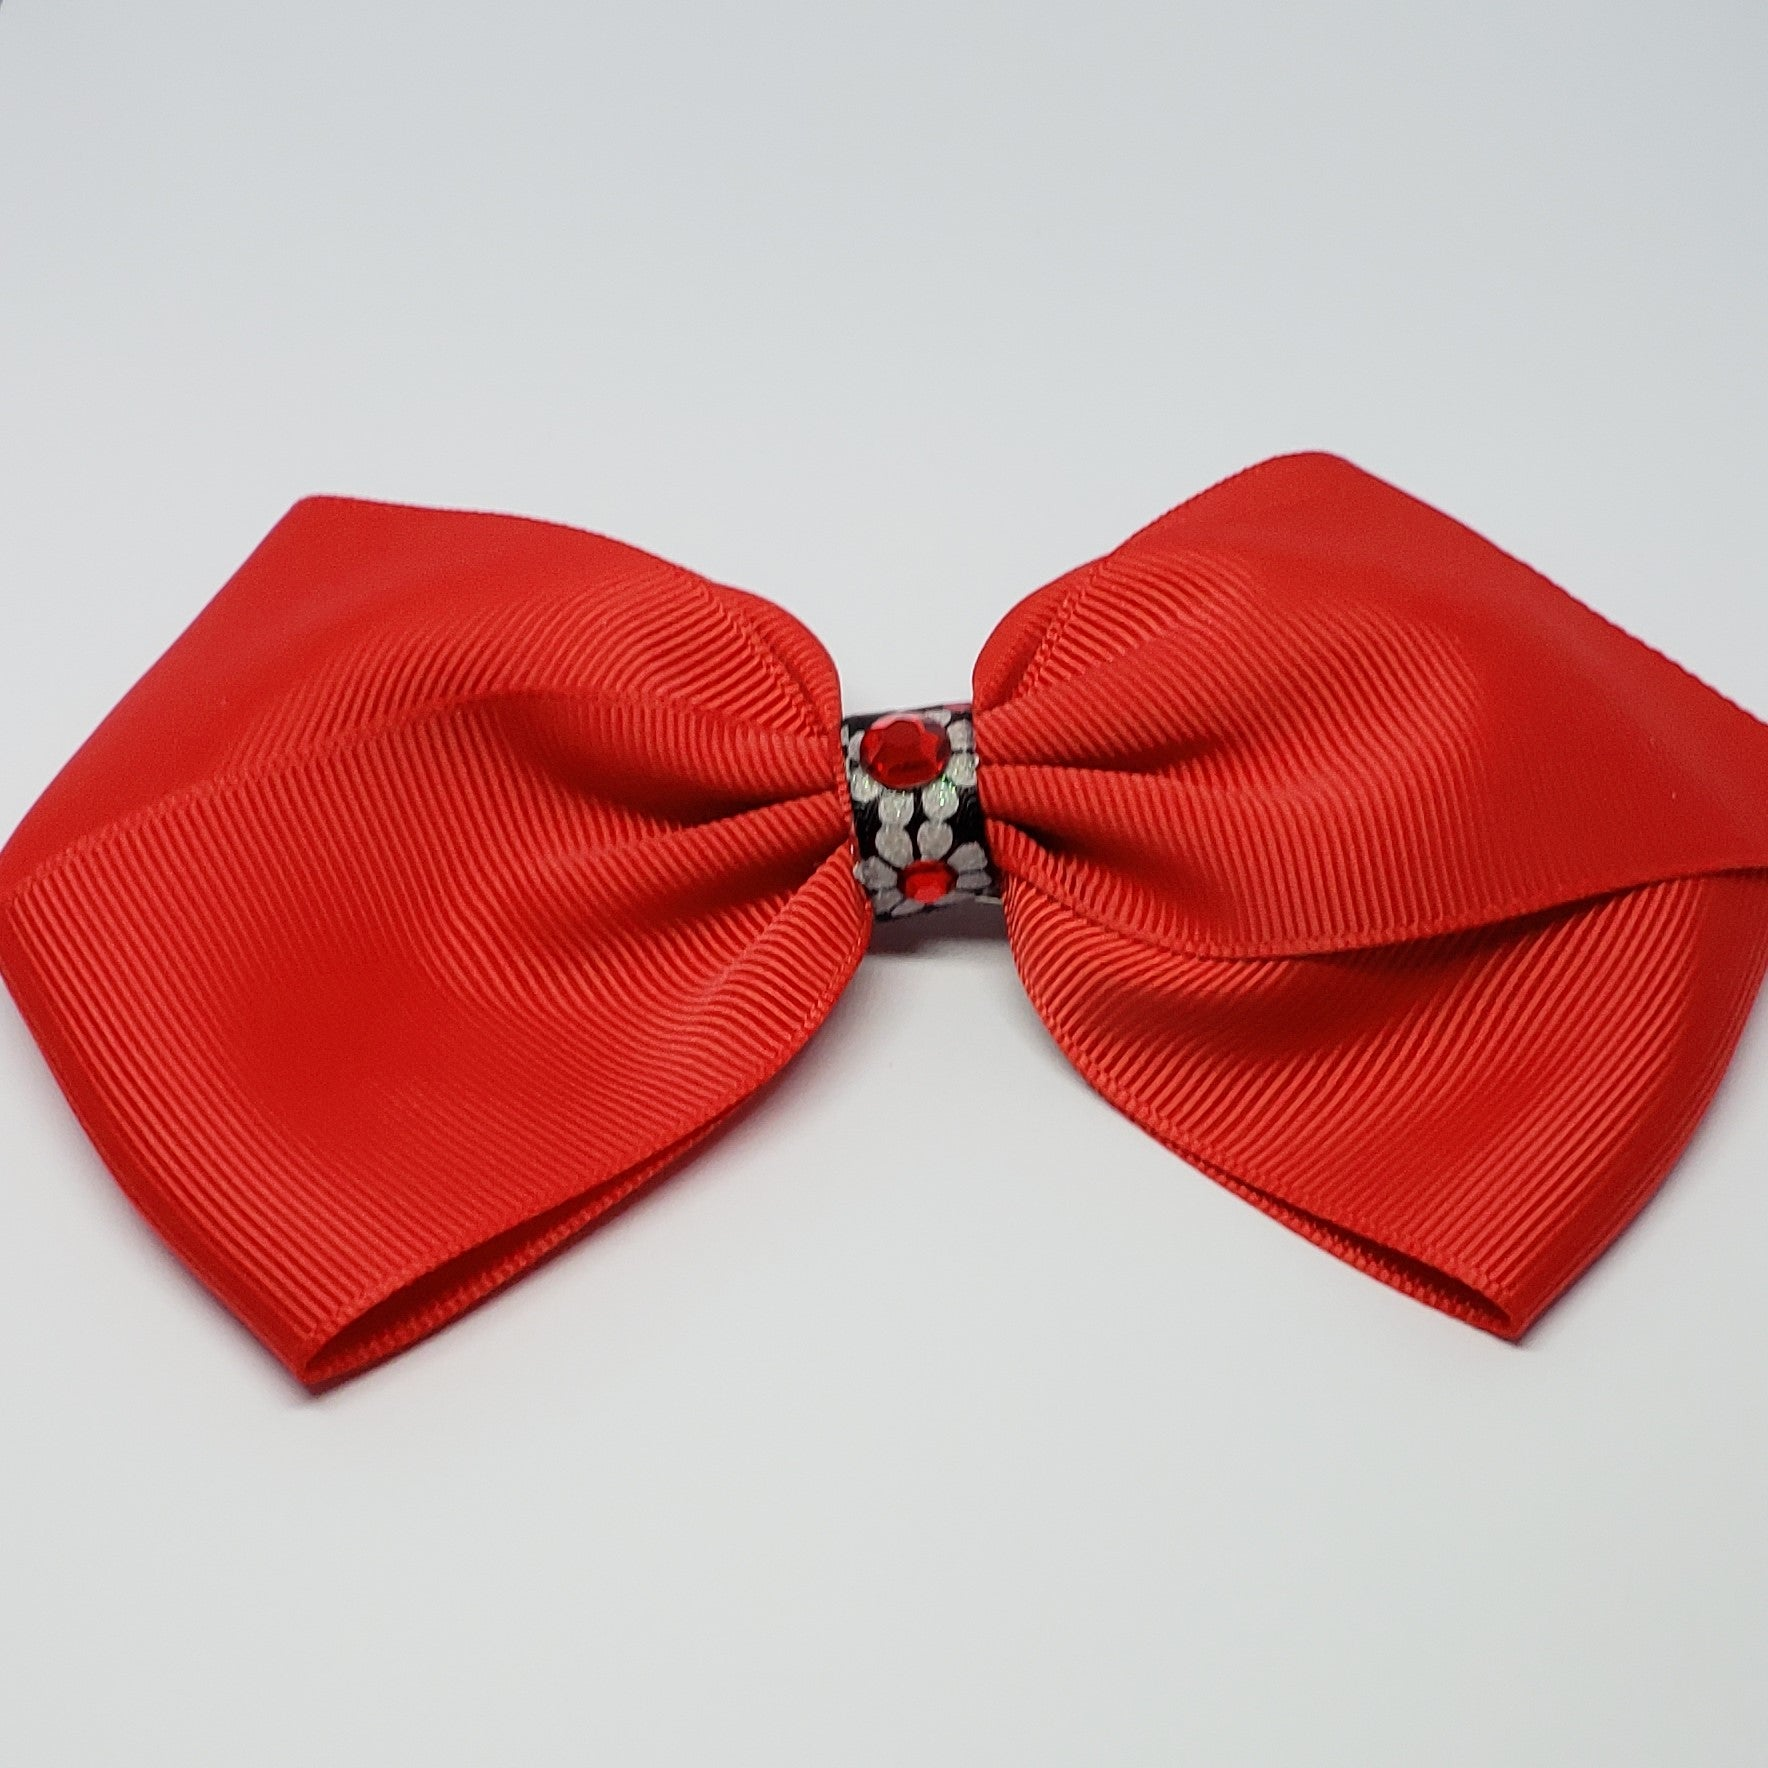 Kelsea Hairclip in Red & Swarovski Stones Detail - Houzz of DVA Boutique